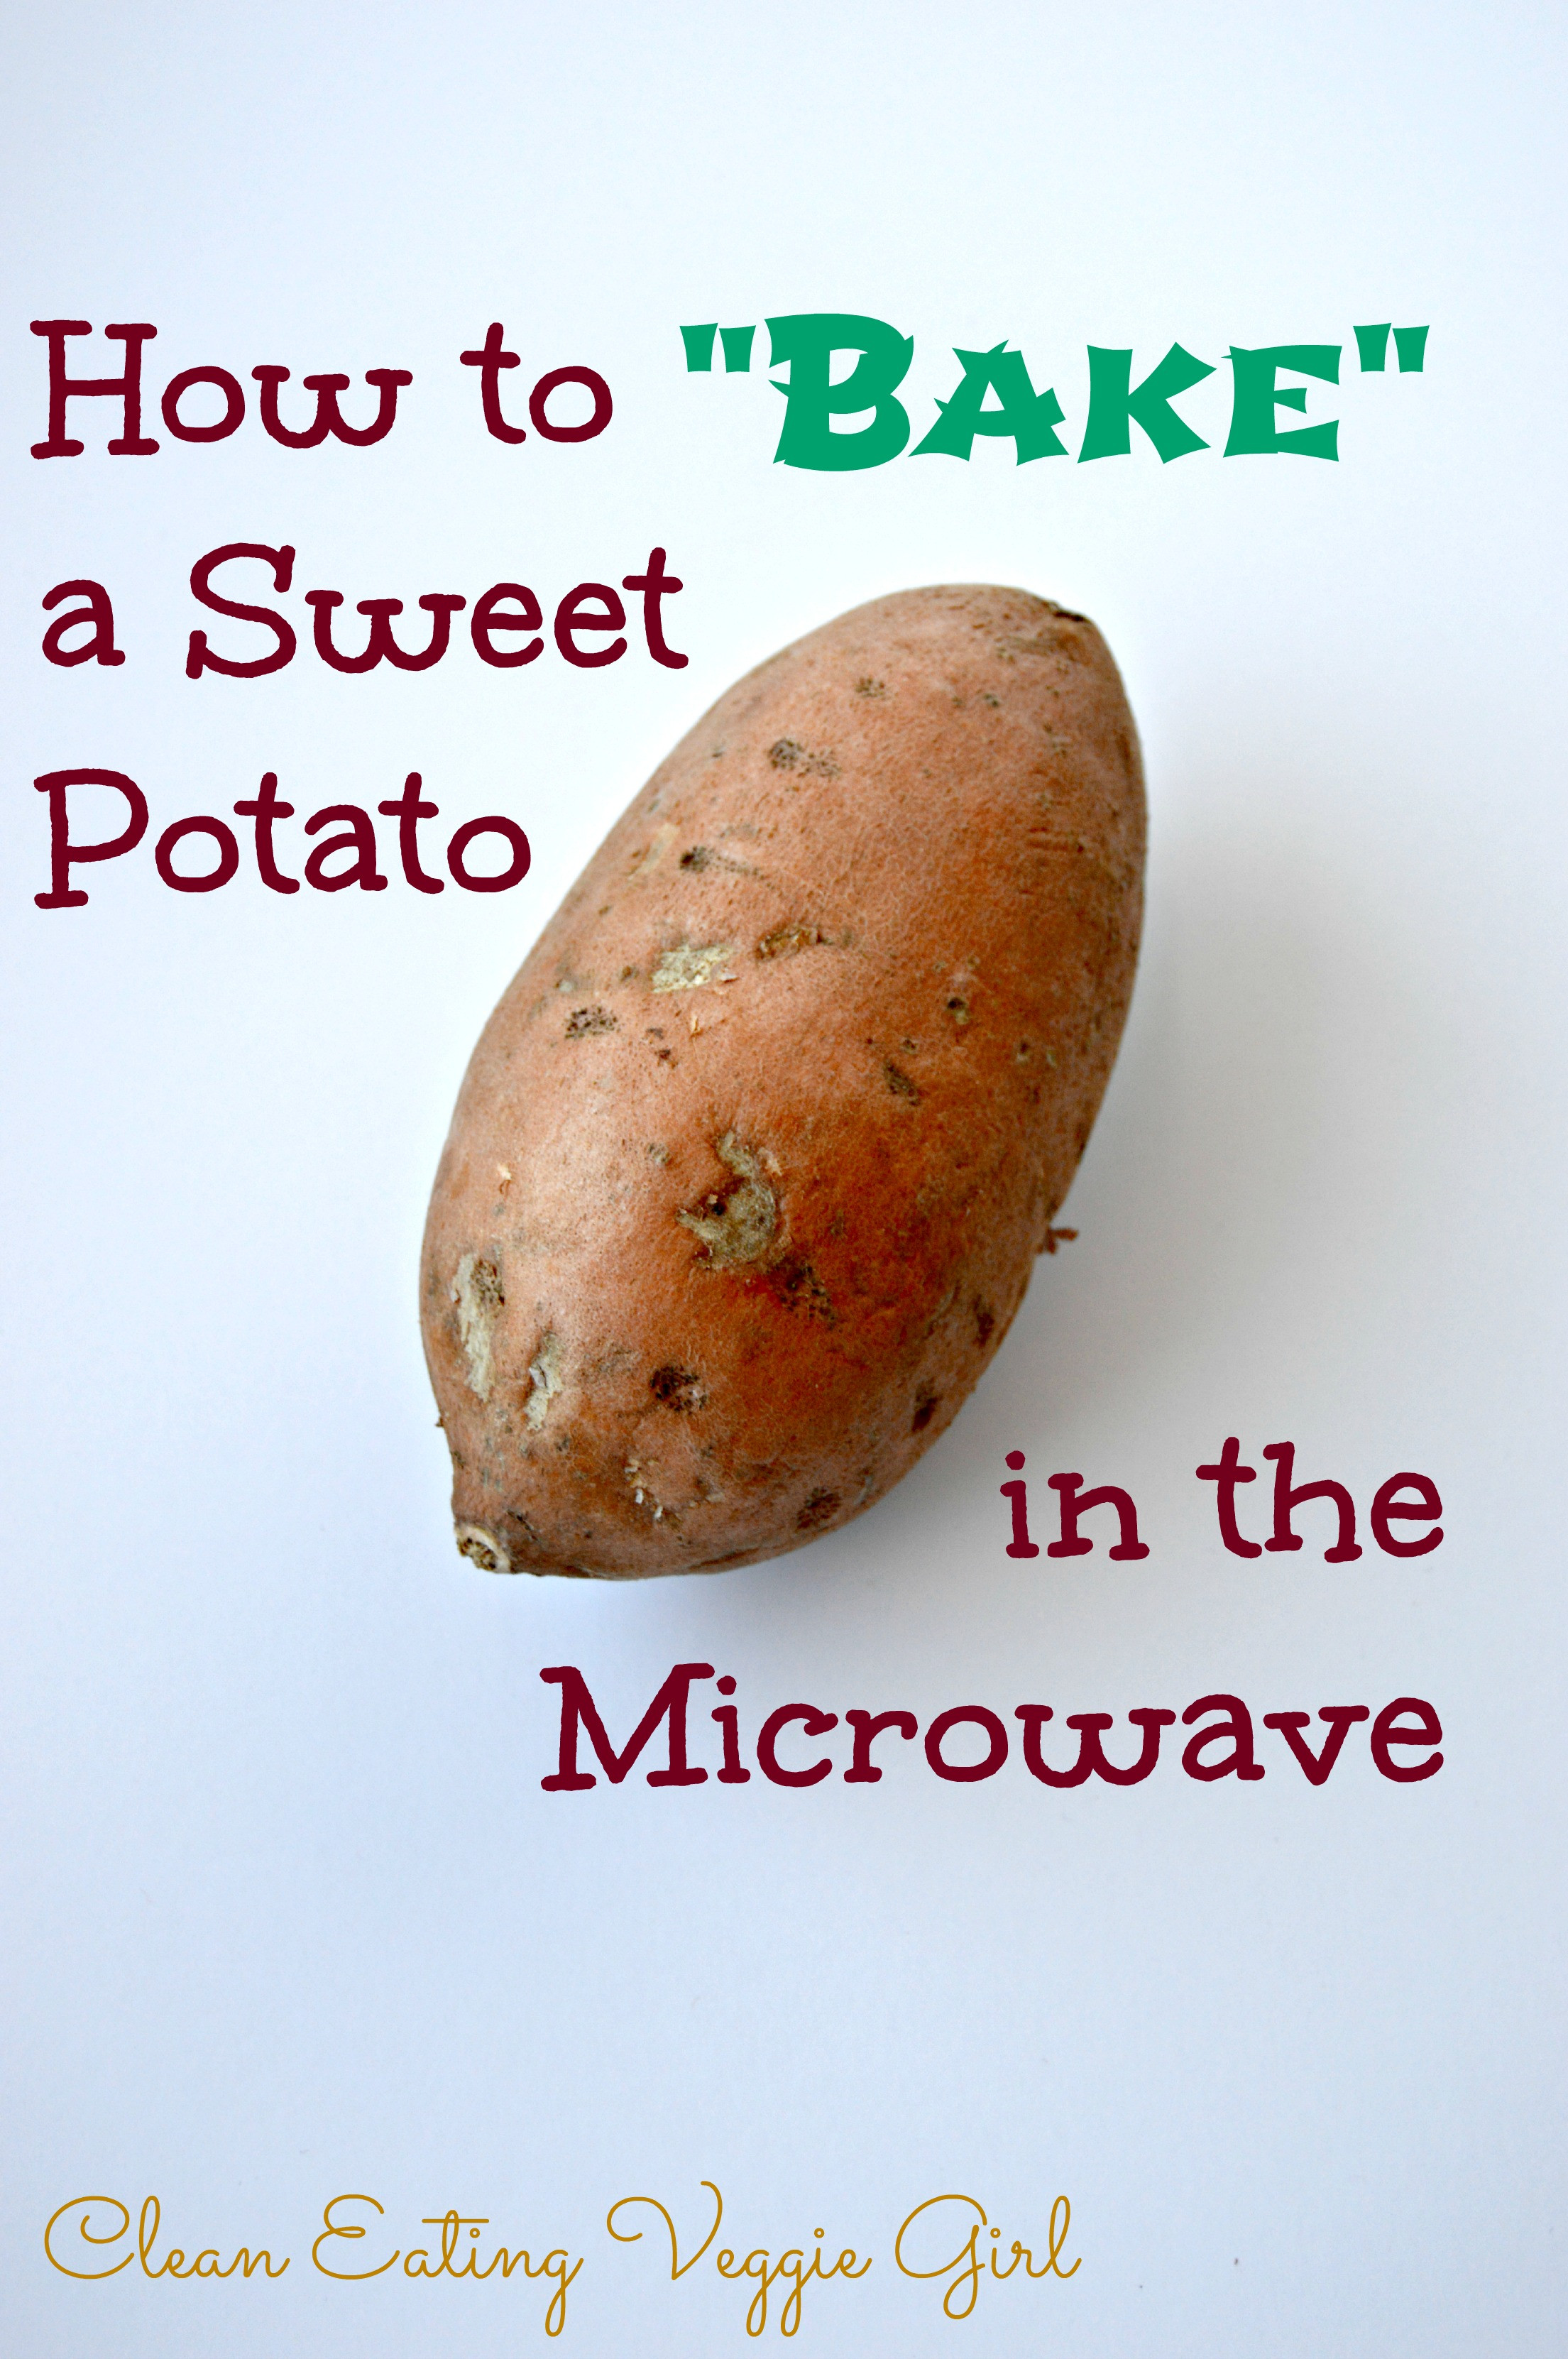 How To Make A Baked Potato In The Microwave  How to Make a Baked Sweet Potato in the Microwave Clean